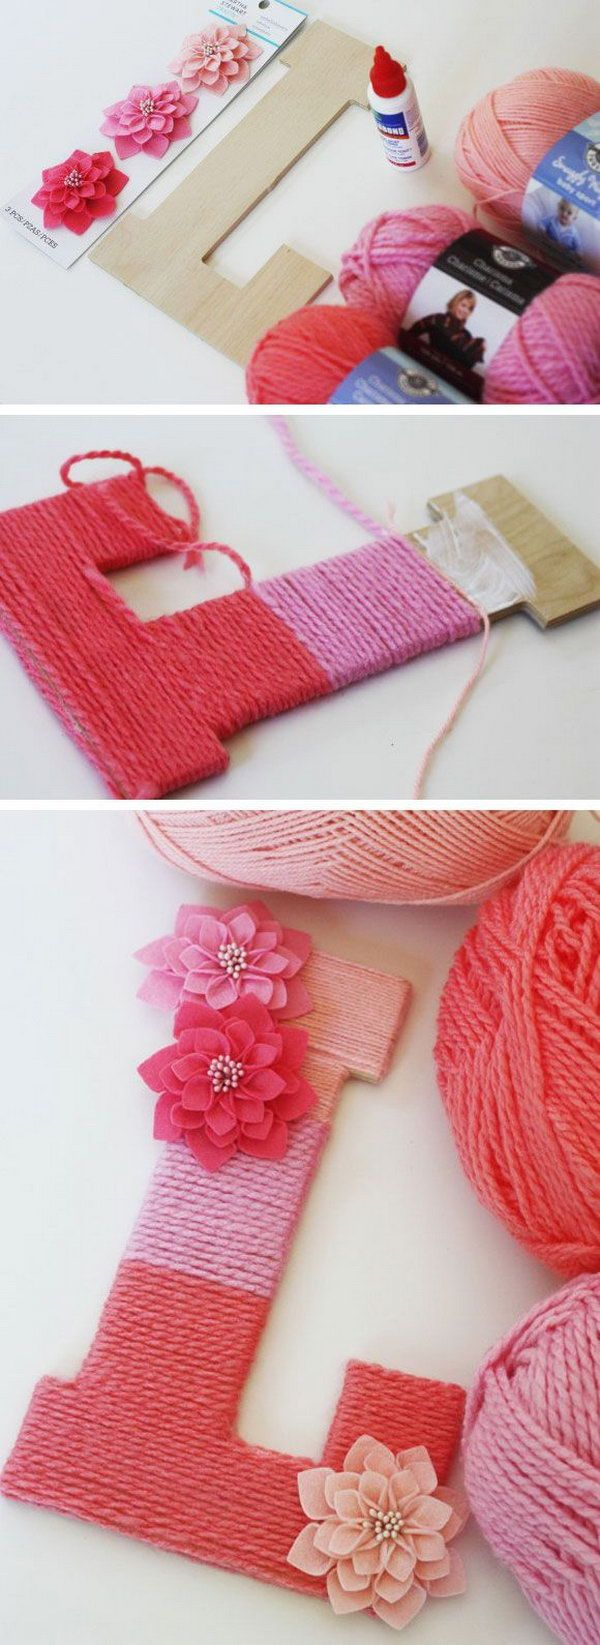 Make a Yarn Wrapped Ombre Monogrammed Letter. Wrap yarn around a letter made out a wood letter for a cute sign in the home. Tutorial via